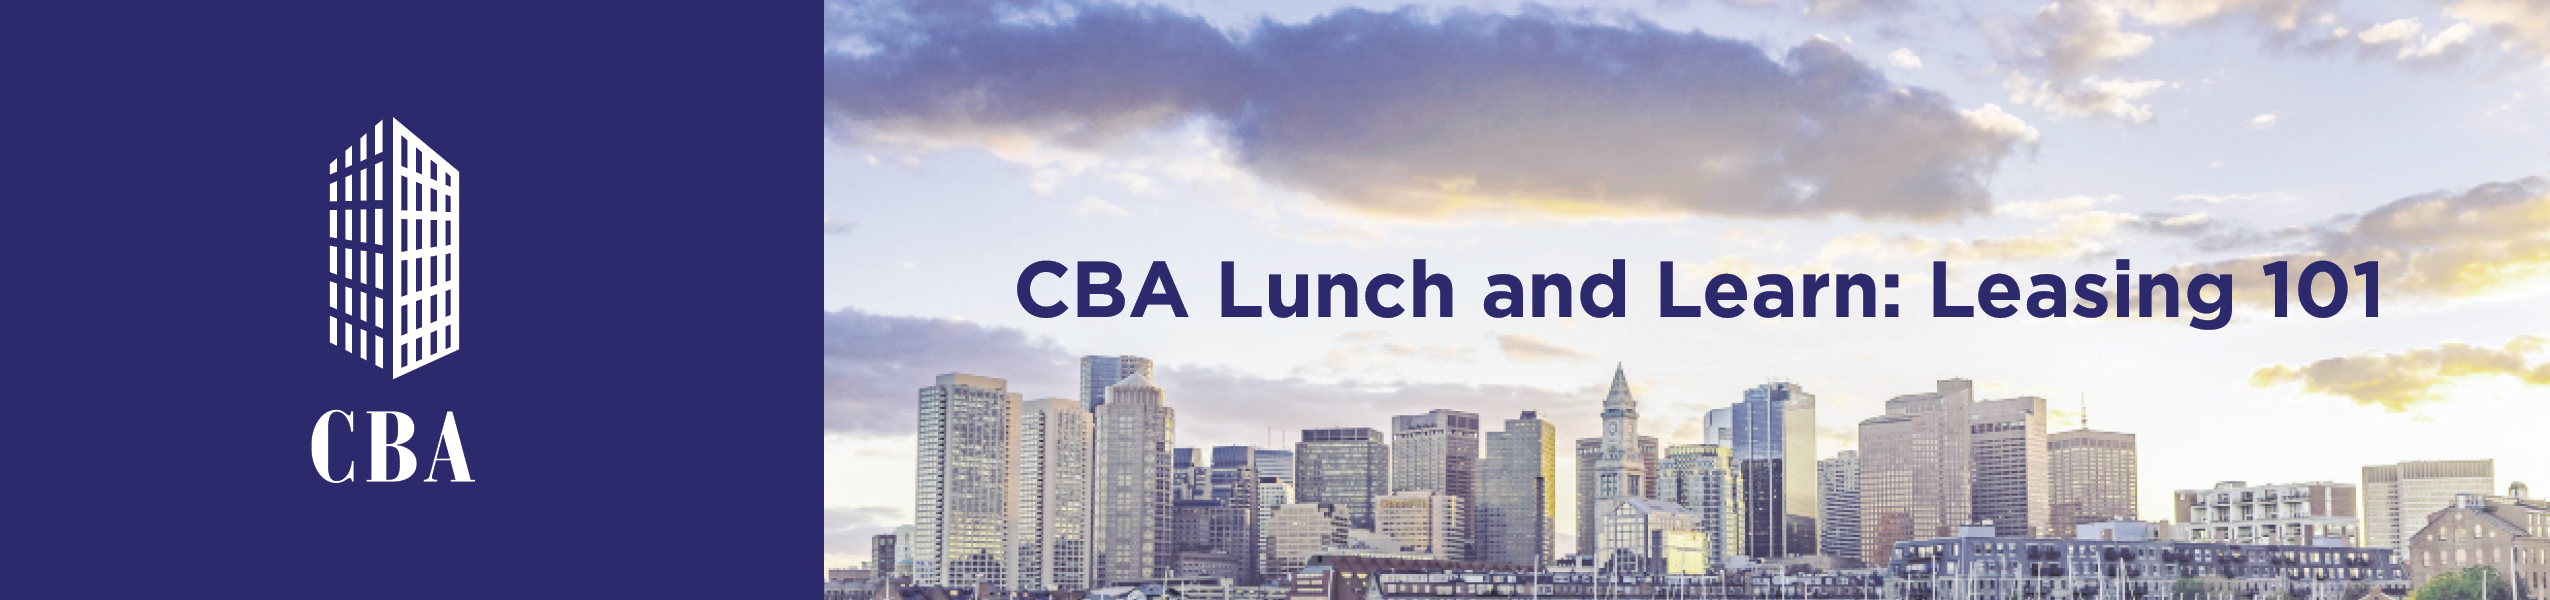 CBA Lunch & Learn | Leasing 101 & Industry Trends